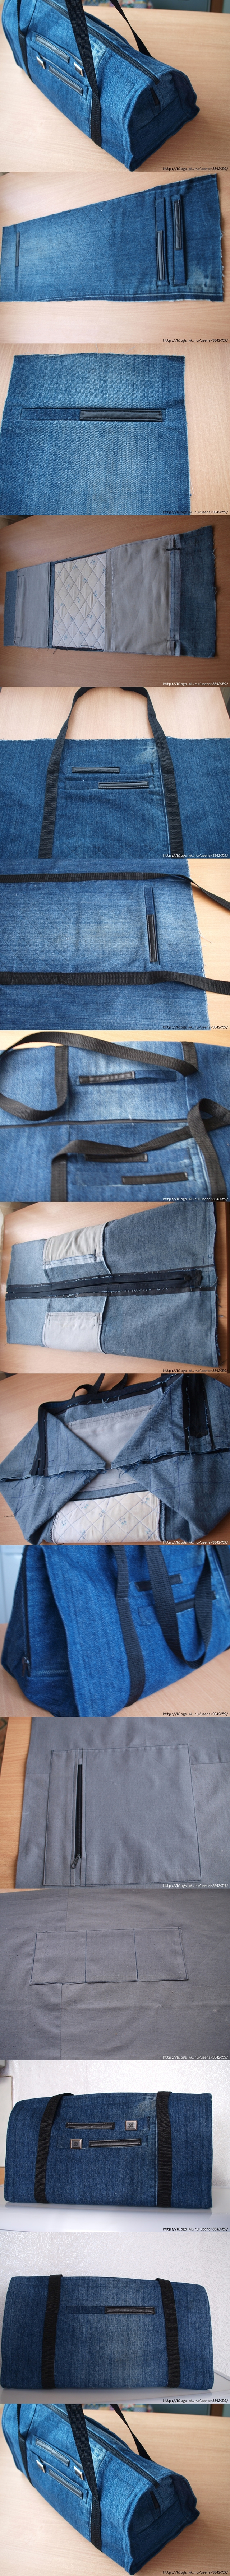 bag-from-jean-tutorial